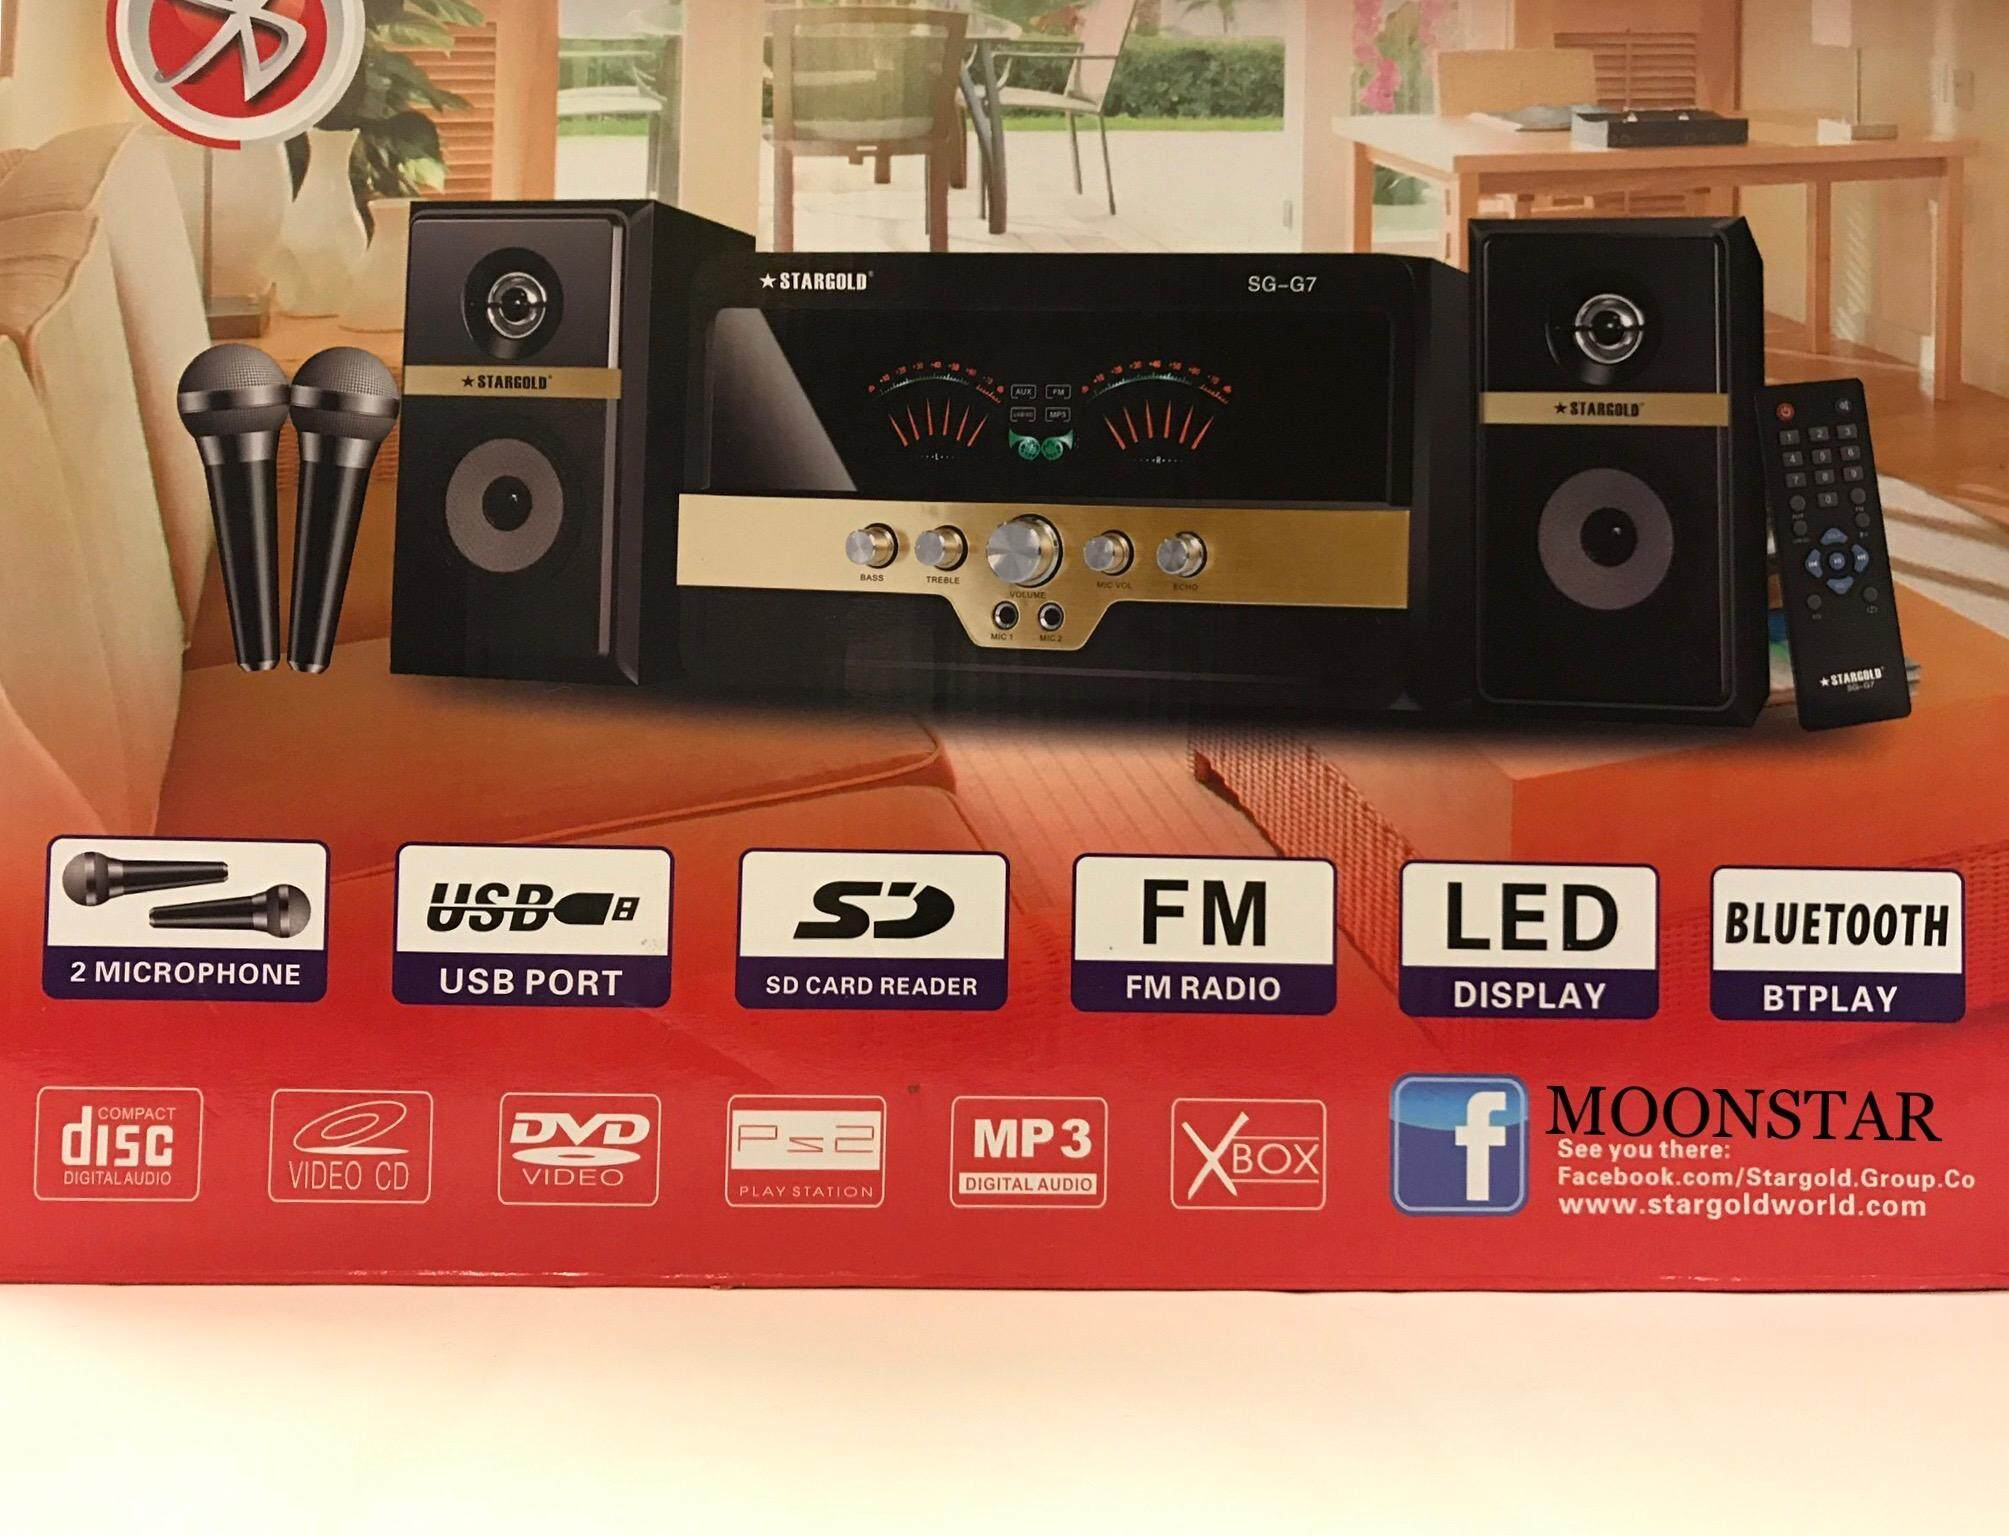 Home Theater System 2.1 Channel + Karaoke System + (2pce Microphone Free, 1pce Wireless Mic + 1pce Wire Mic Save Rm 100)+fm Radio+bluetooth+ Mic Input 2 By Moonstar.